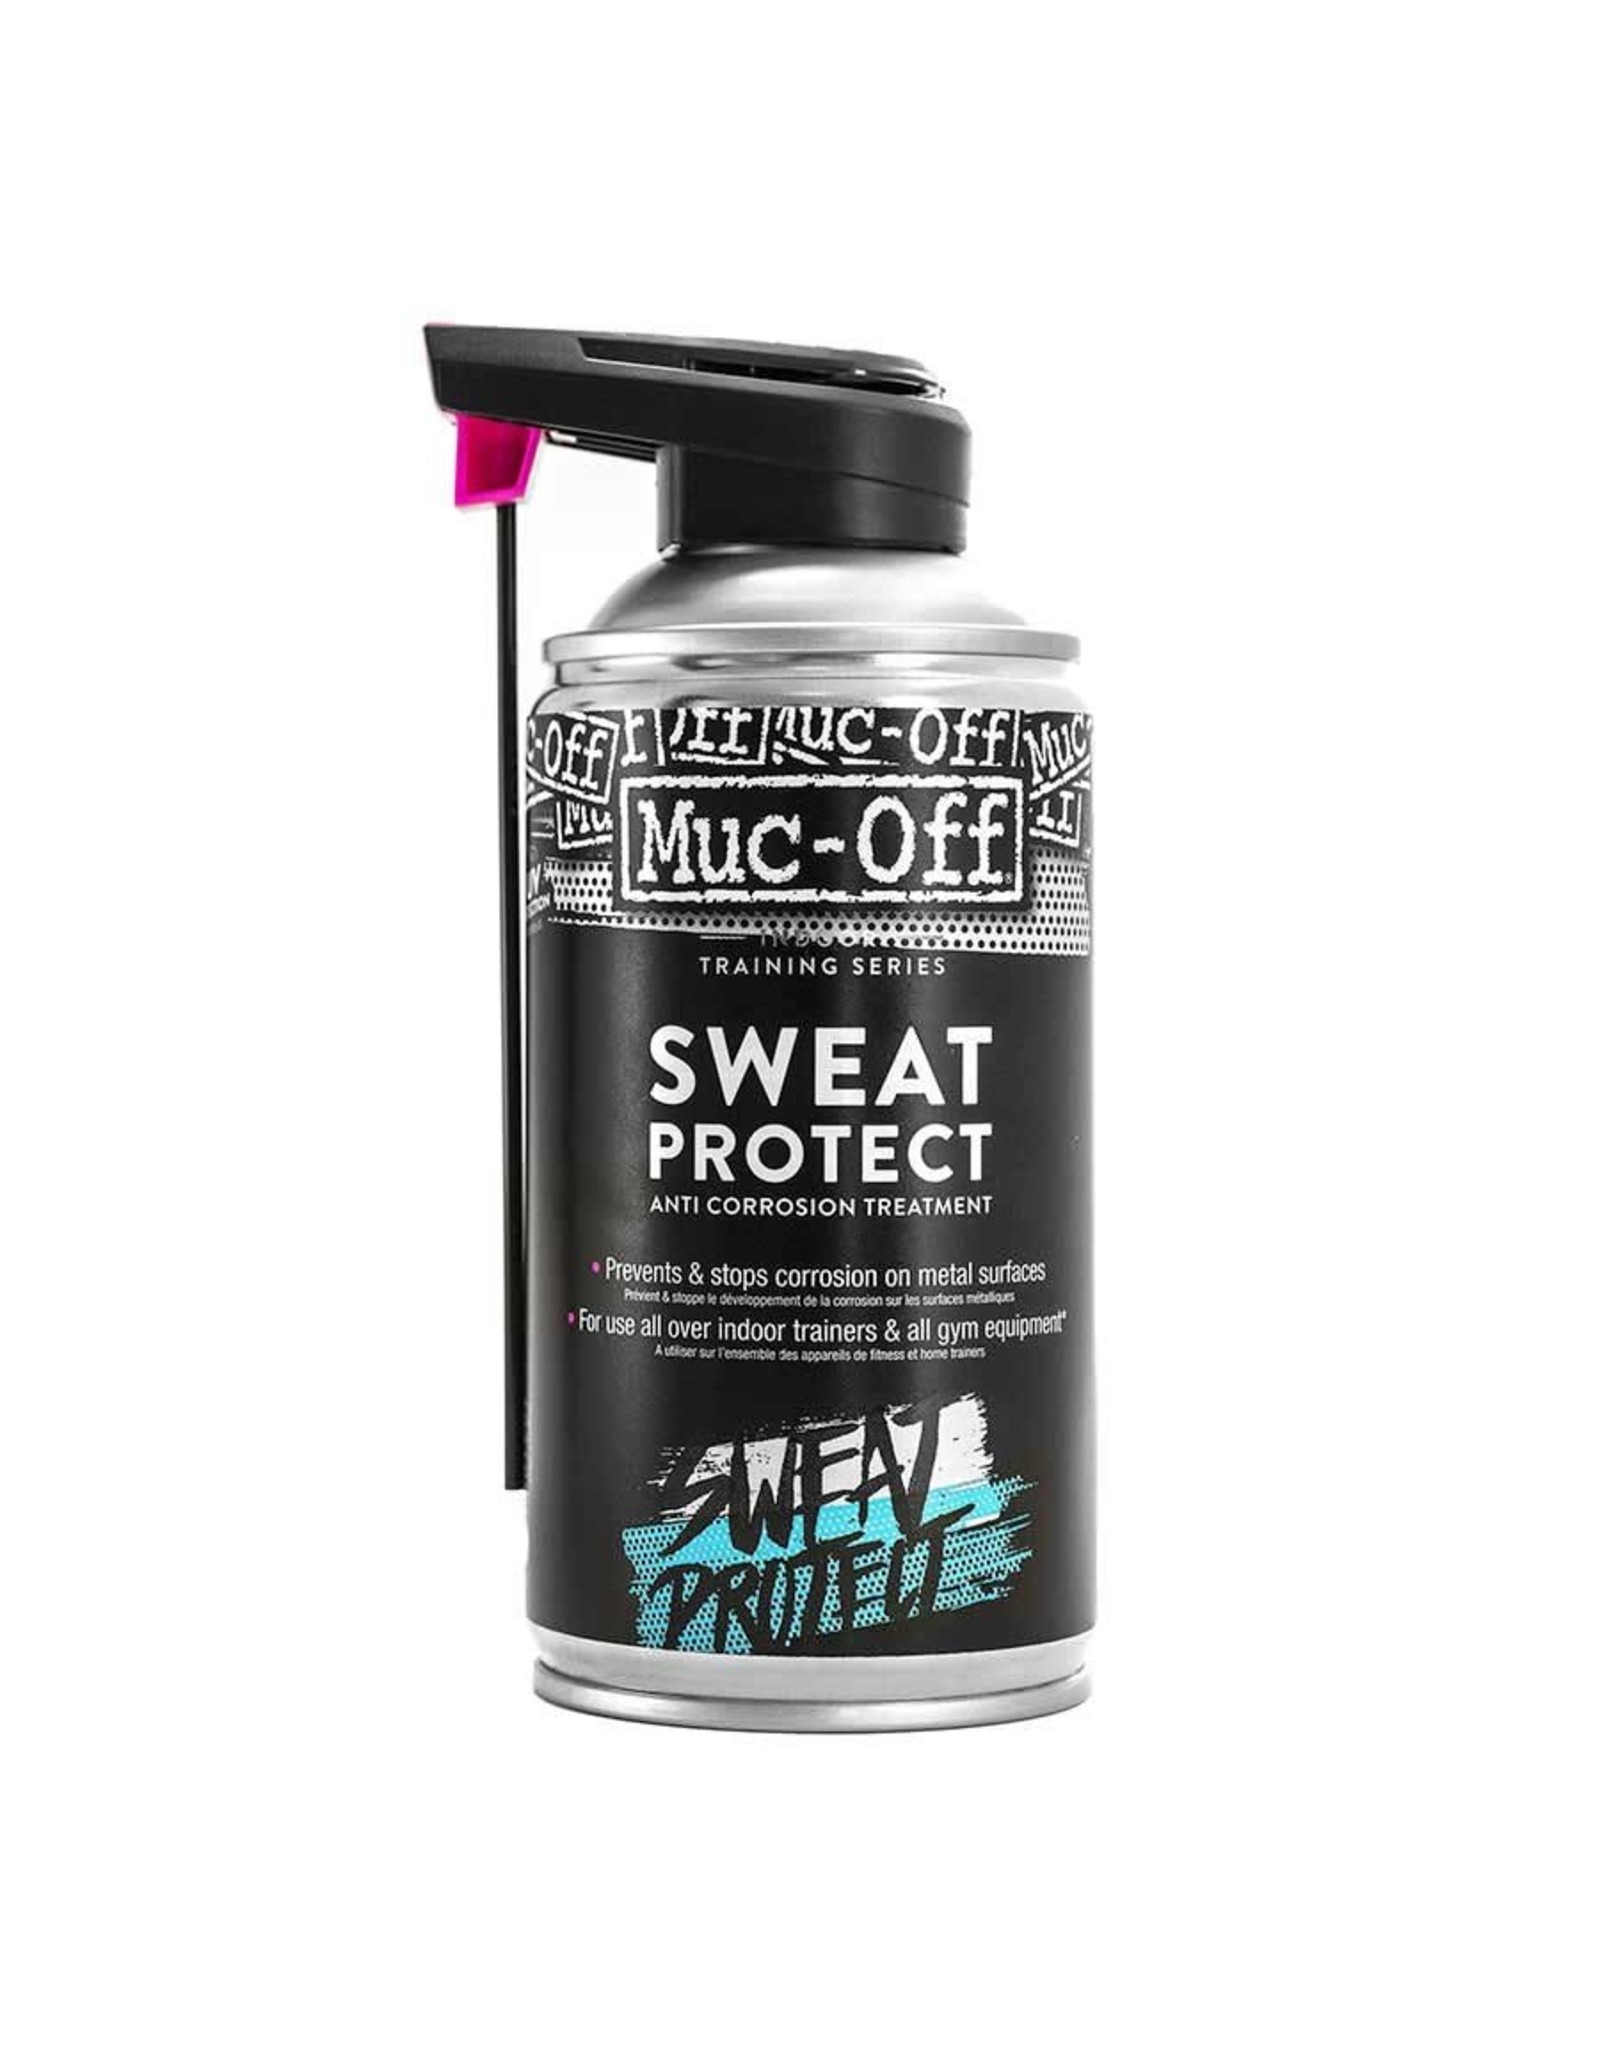 Muc-Off Muc-Off, Sweat Protect, 300ml